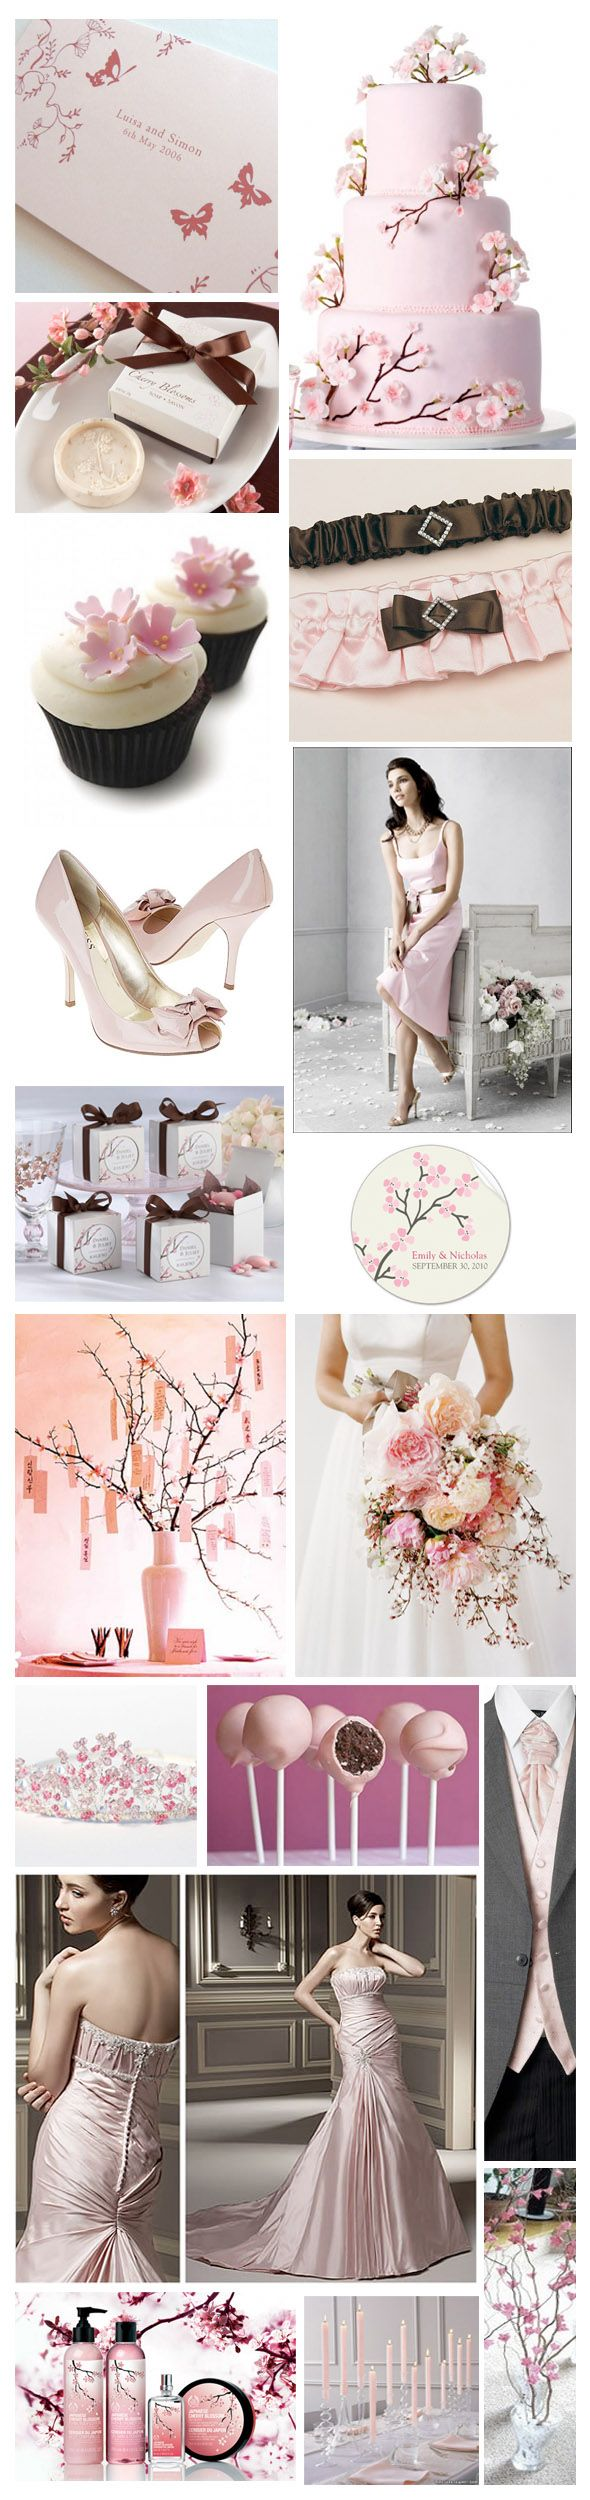 310 Best A A Cherry Blossom Wedding Images On Pinterest Cake